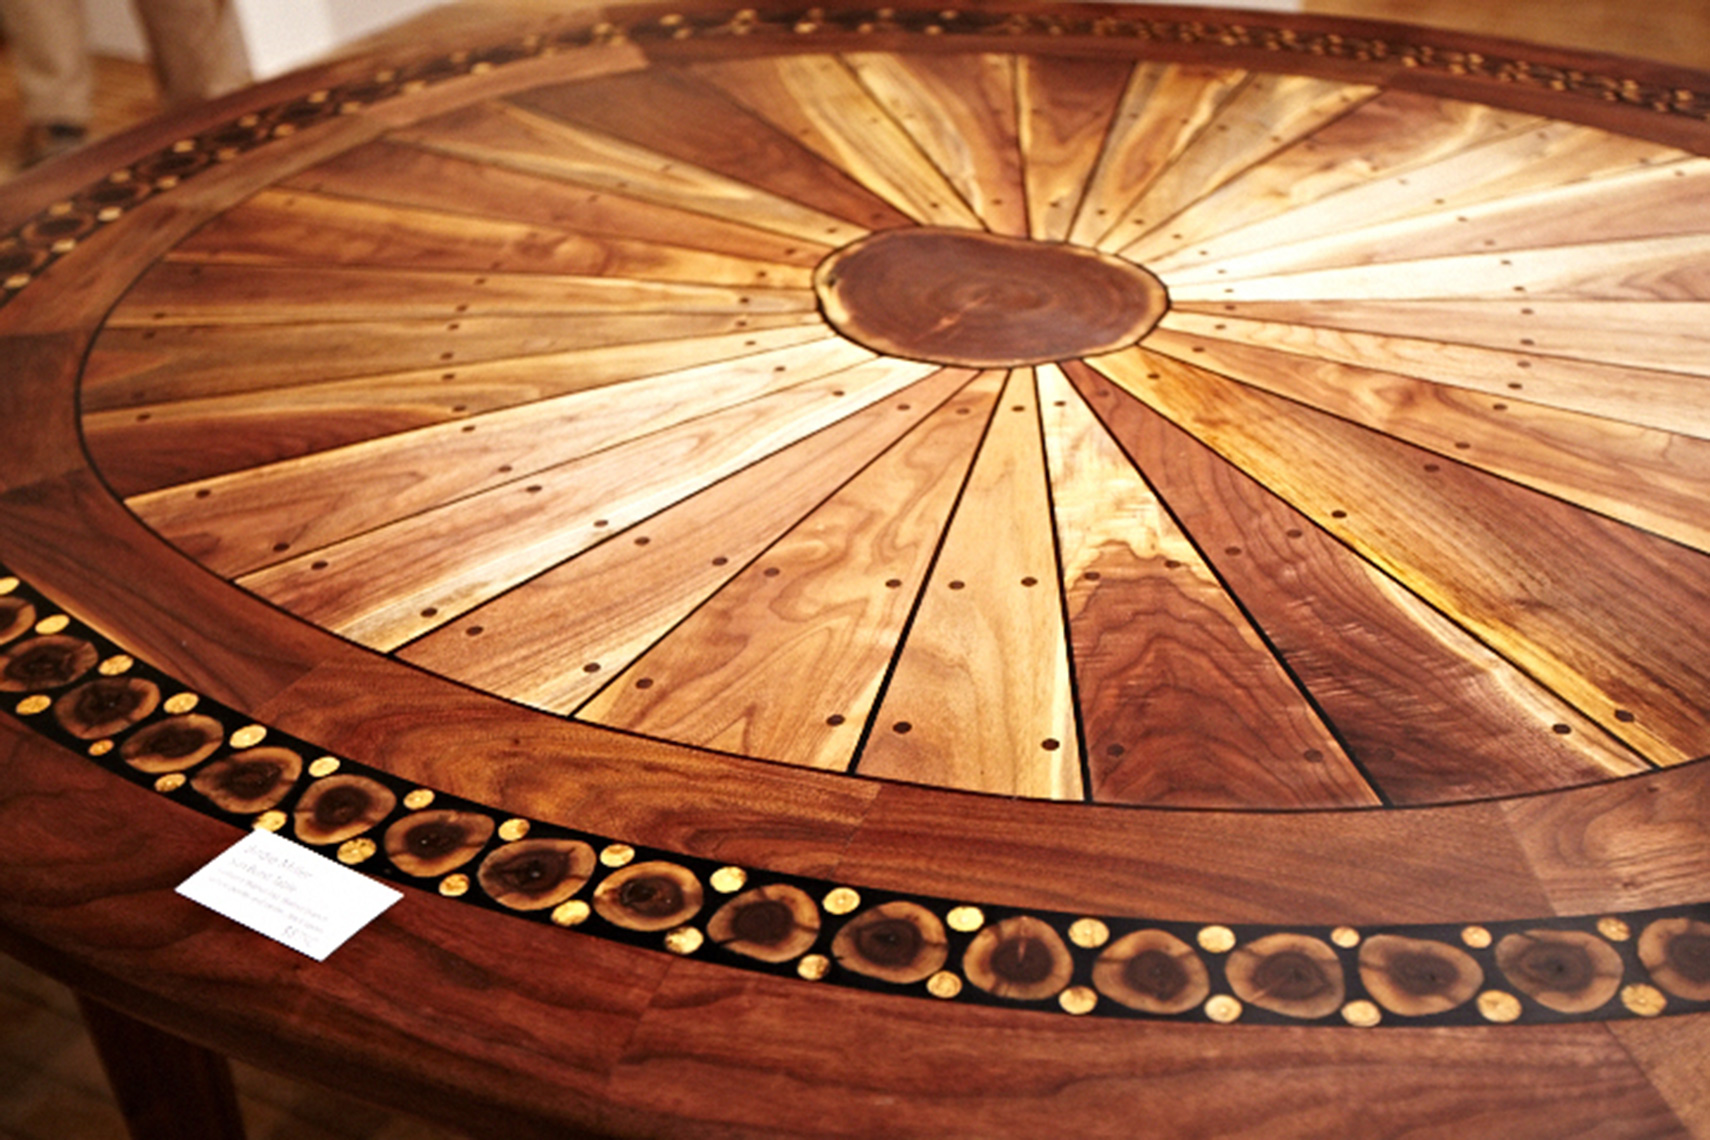 new jersey custom wood furniture-Artistic walnut sunburst table contemporary, crafts style, rustic